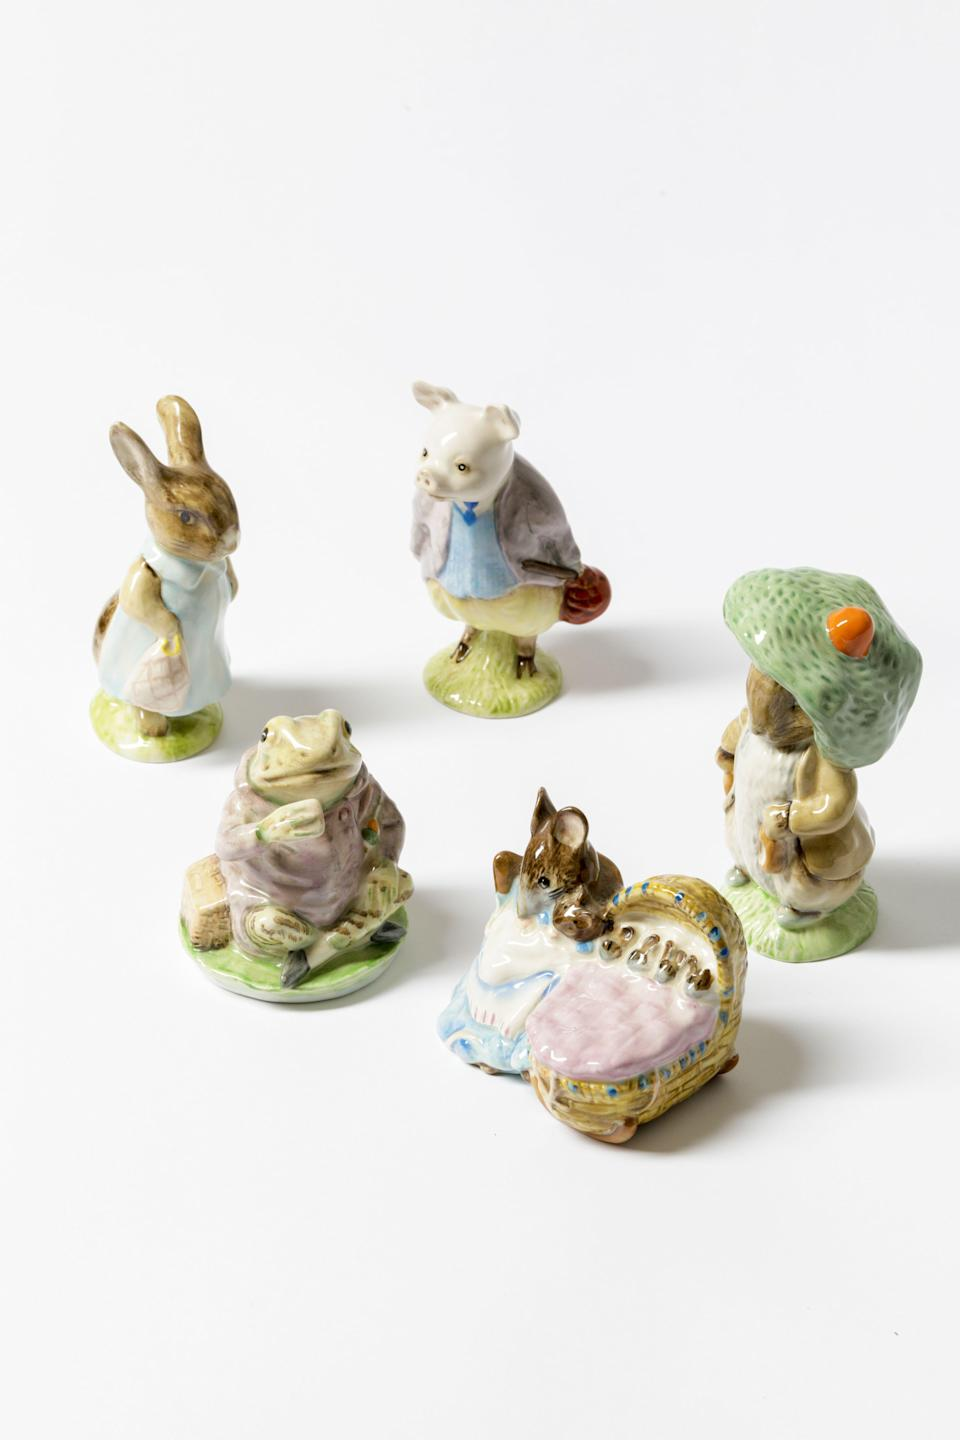 "<p>housesandparties.com</p><p><strong>$326.00</strong></p><p><a href=""https://housesandparties.com/collections/mr-mcgregors-garden/products/set-of-5-beatrix-potter-figurines"" rel=""nofollow noopener"" target=""_blank"" data-ylk=""slk:Shop Now"" class=""link rapid-noclick-resp"">Shop Now</a></p><p>An Easter forest would be incomplete without Beatrix Potter's playful figurines inspired by the beloved characters of Peter Rabbit. </p>"